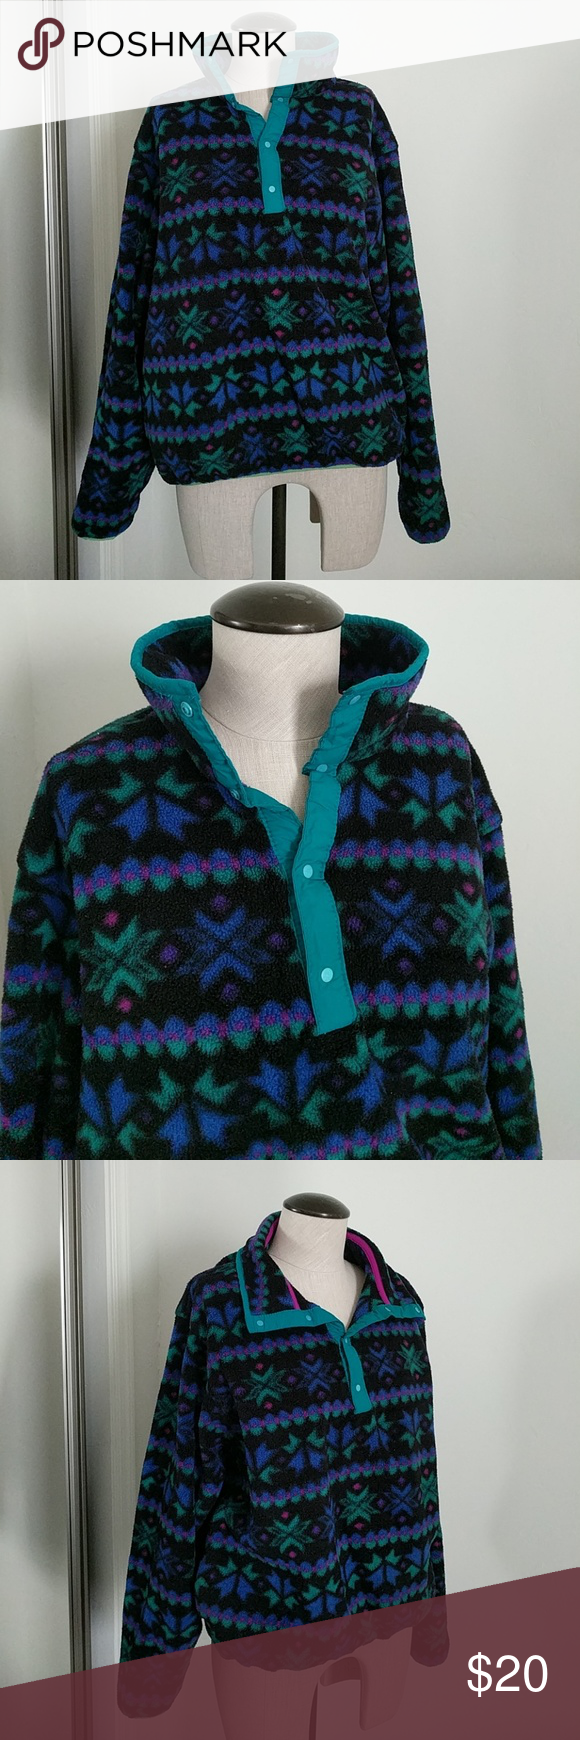 Vtg fleece pullover nordic pattern l fleece sweater pullover and